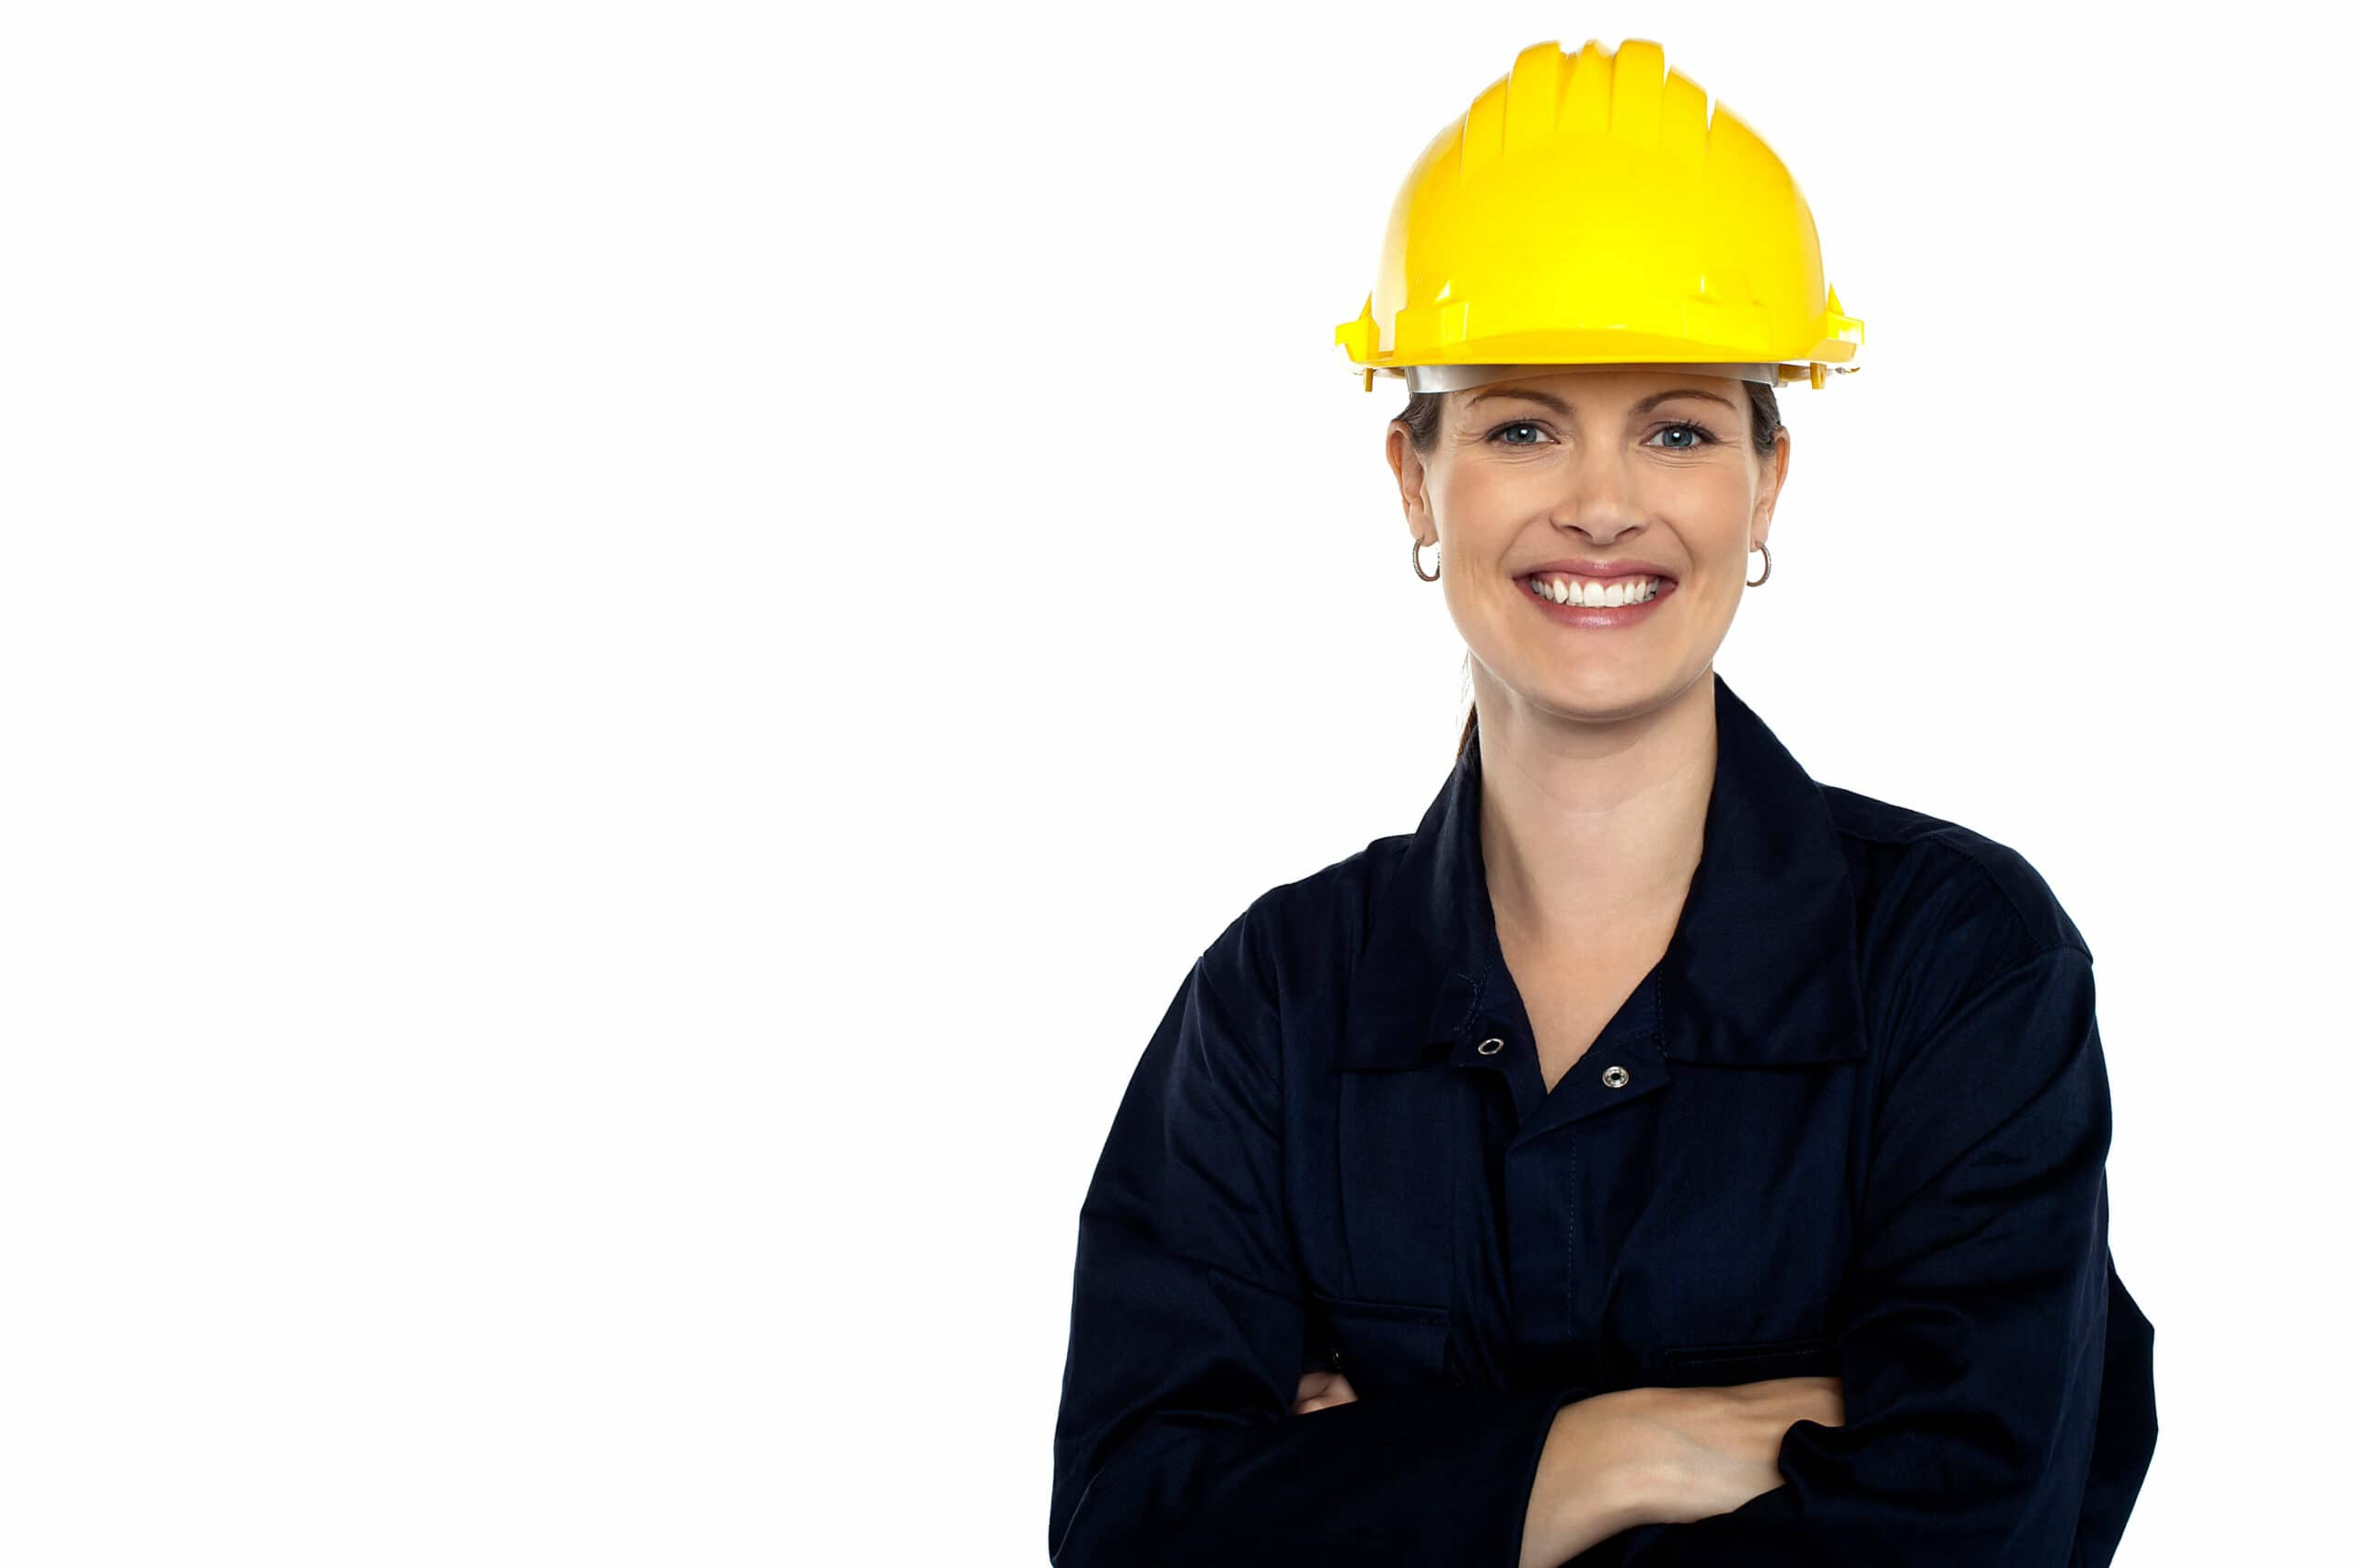 Beaming construction worker wearing yellow safety helmet. Cheerful portrait